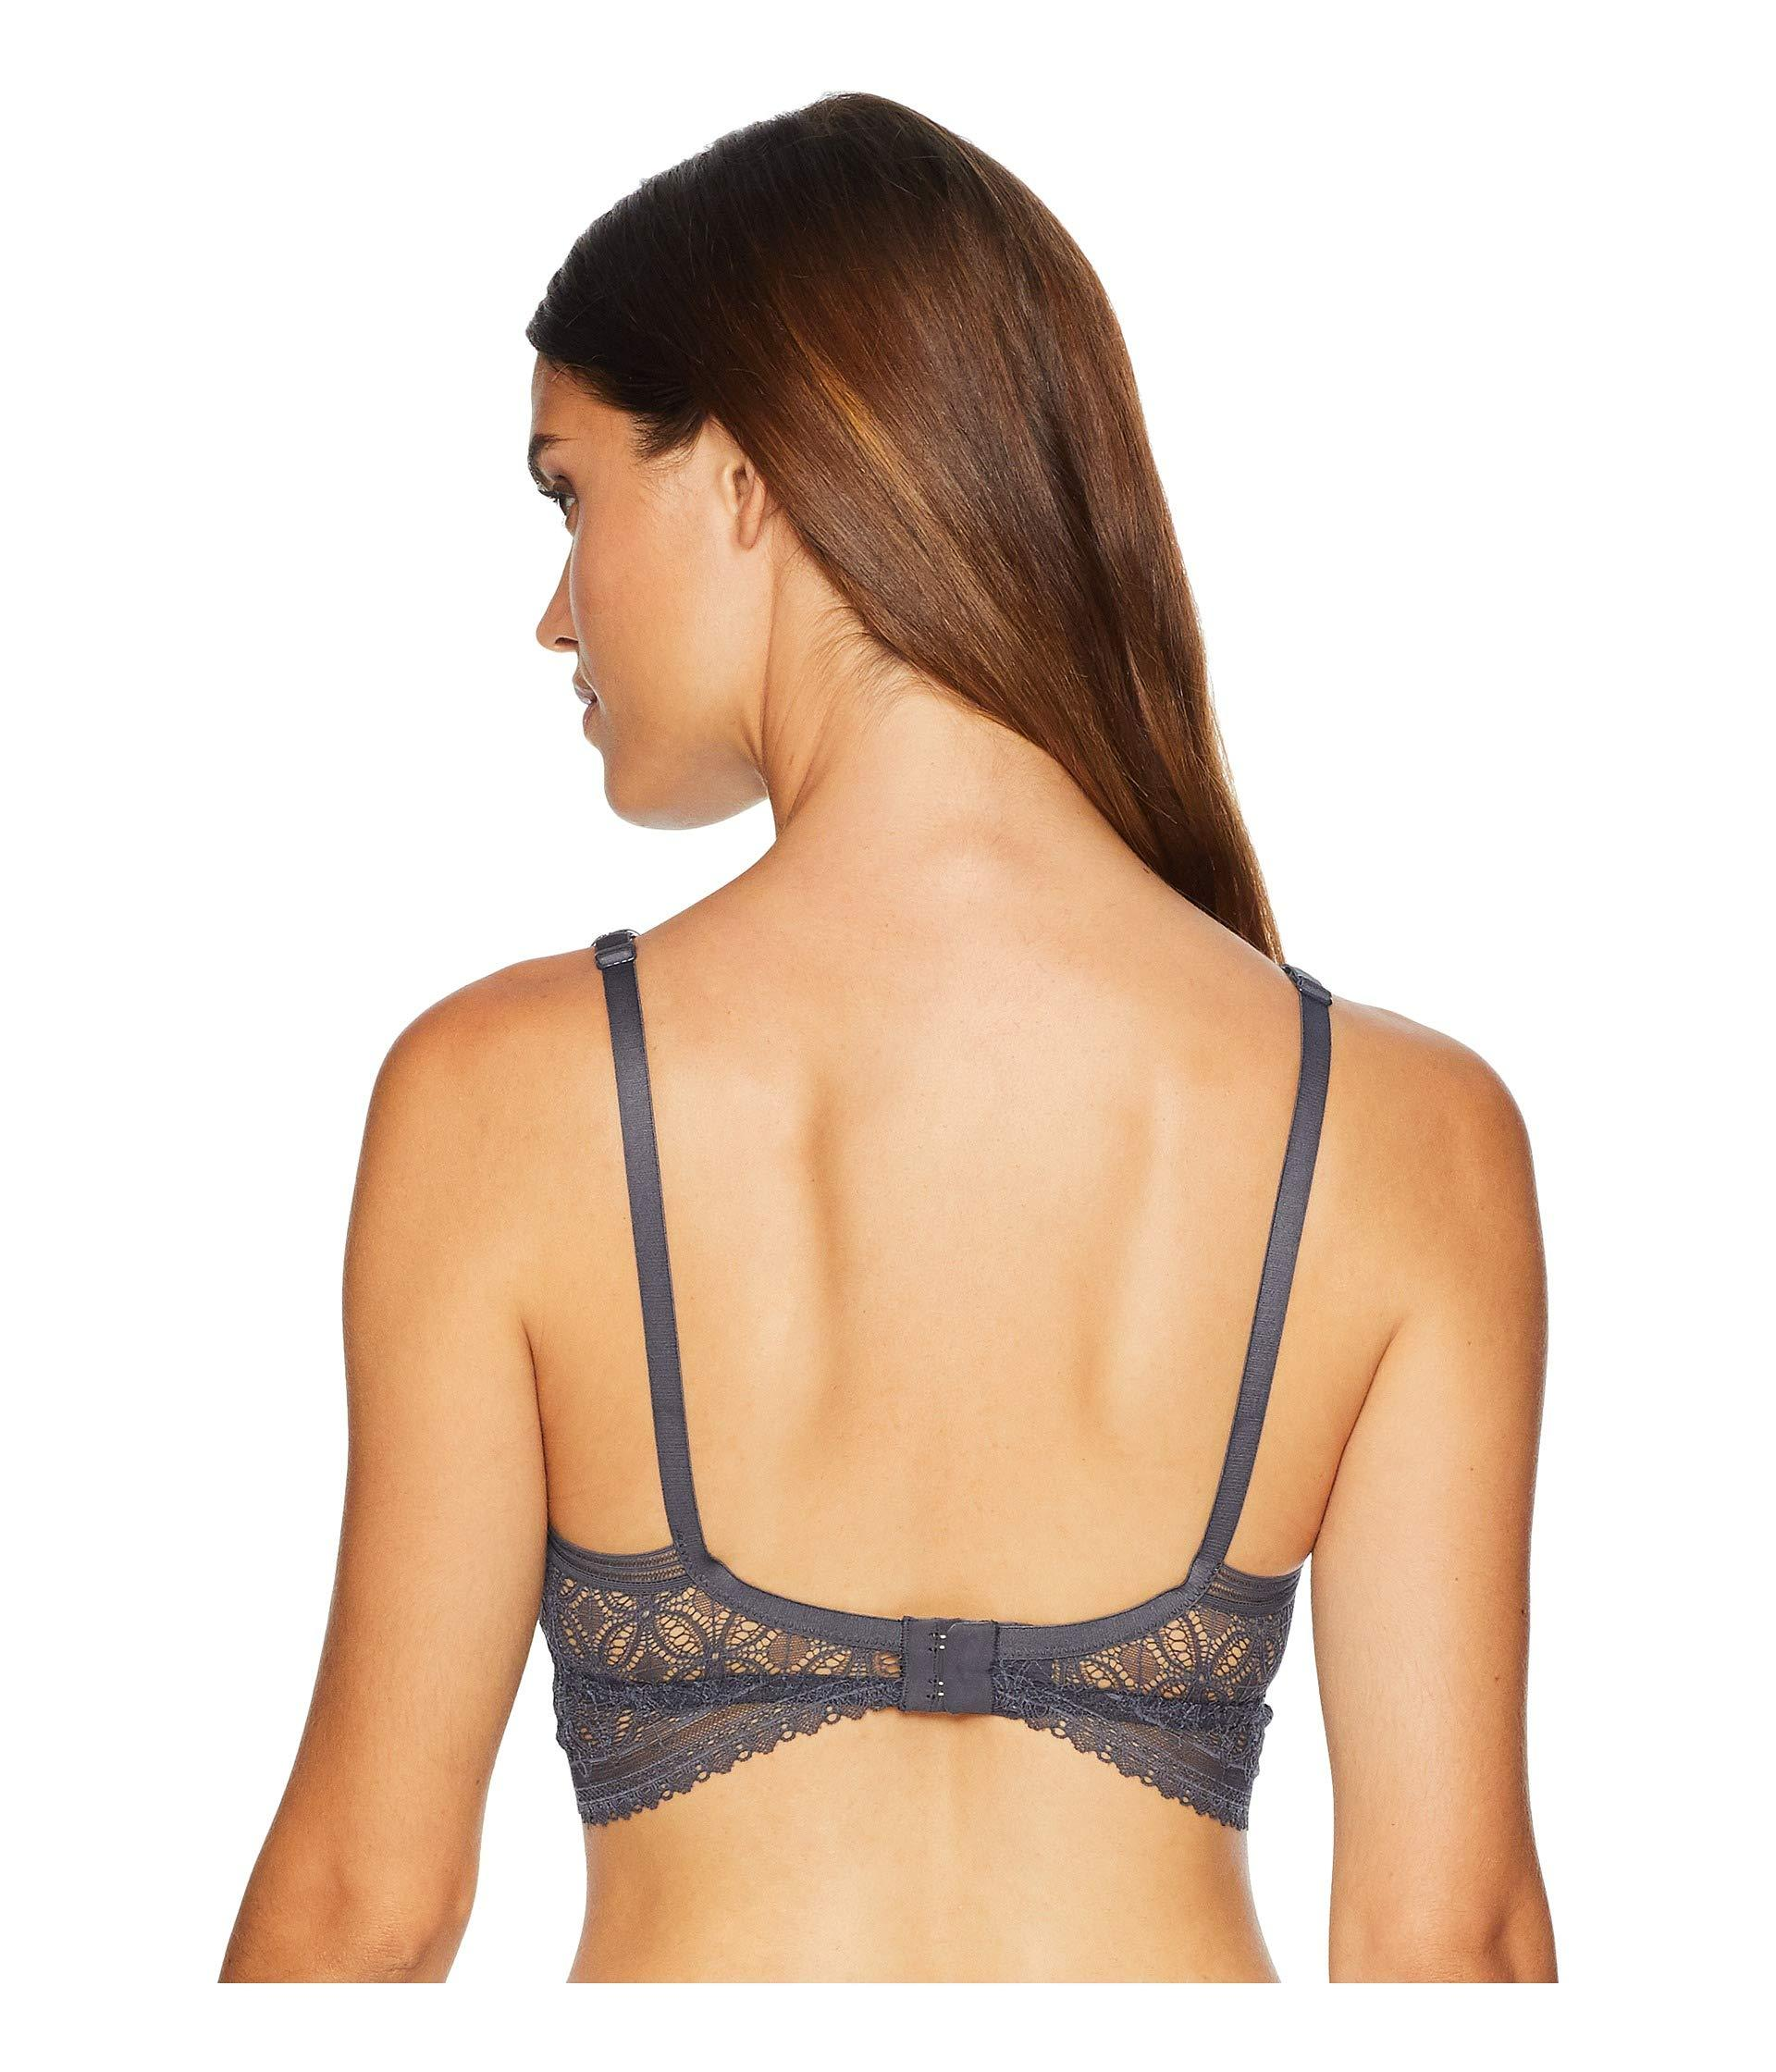 8c9f510fdb153 Lyst - Else Chloe Soft Cup Longline Bra (black) Women s Bra in Gray